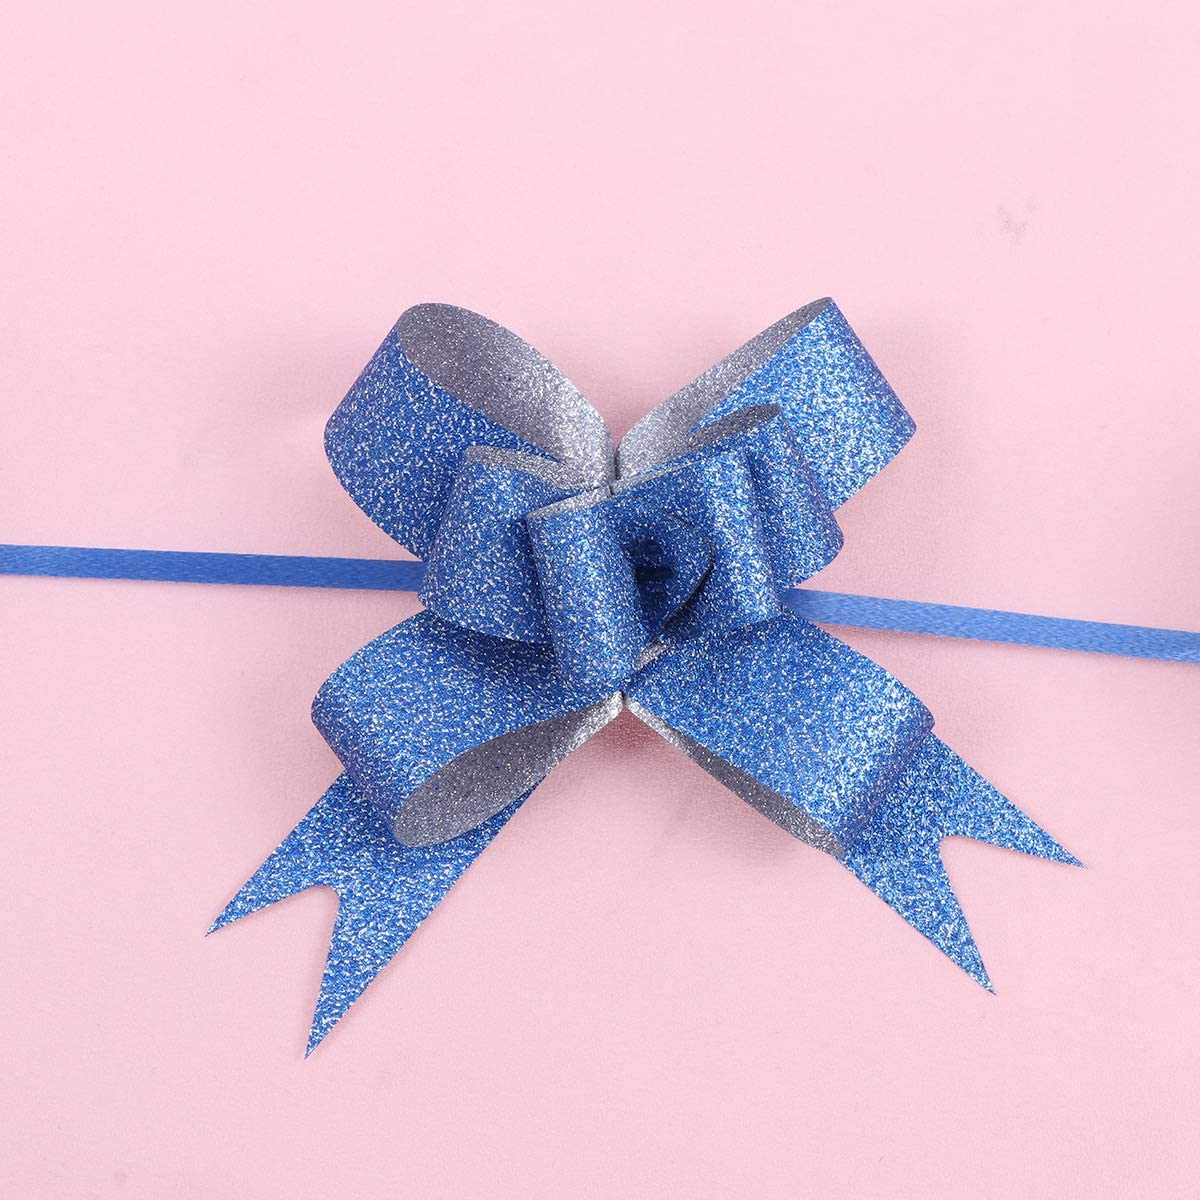 STOBOK Glitter Pull Bows Gift Wrapping Ribbons for DIY Decor 100Pcs Assorted Colors